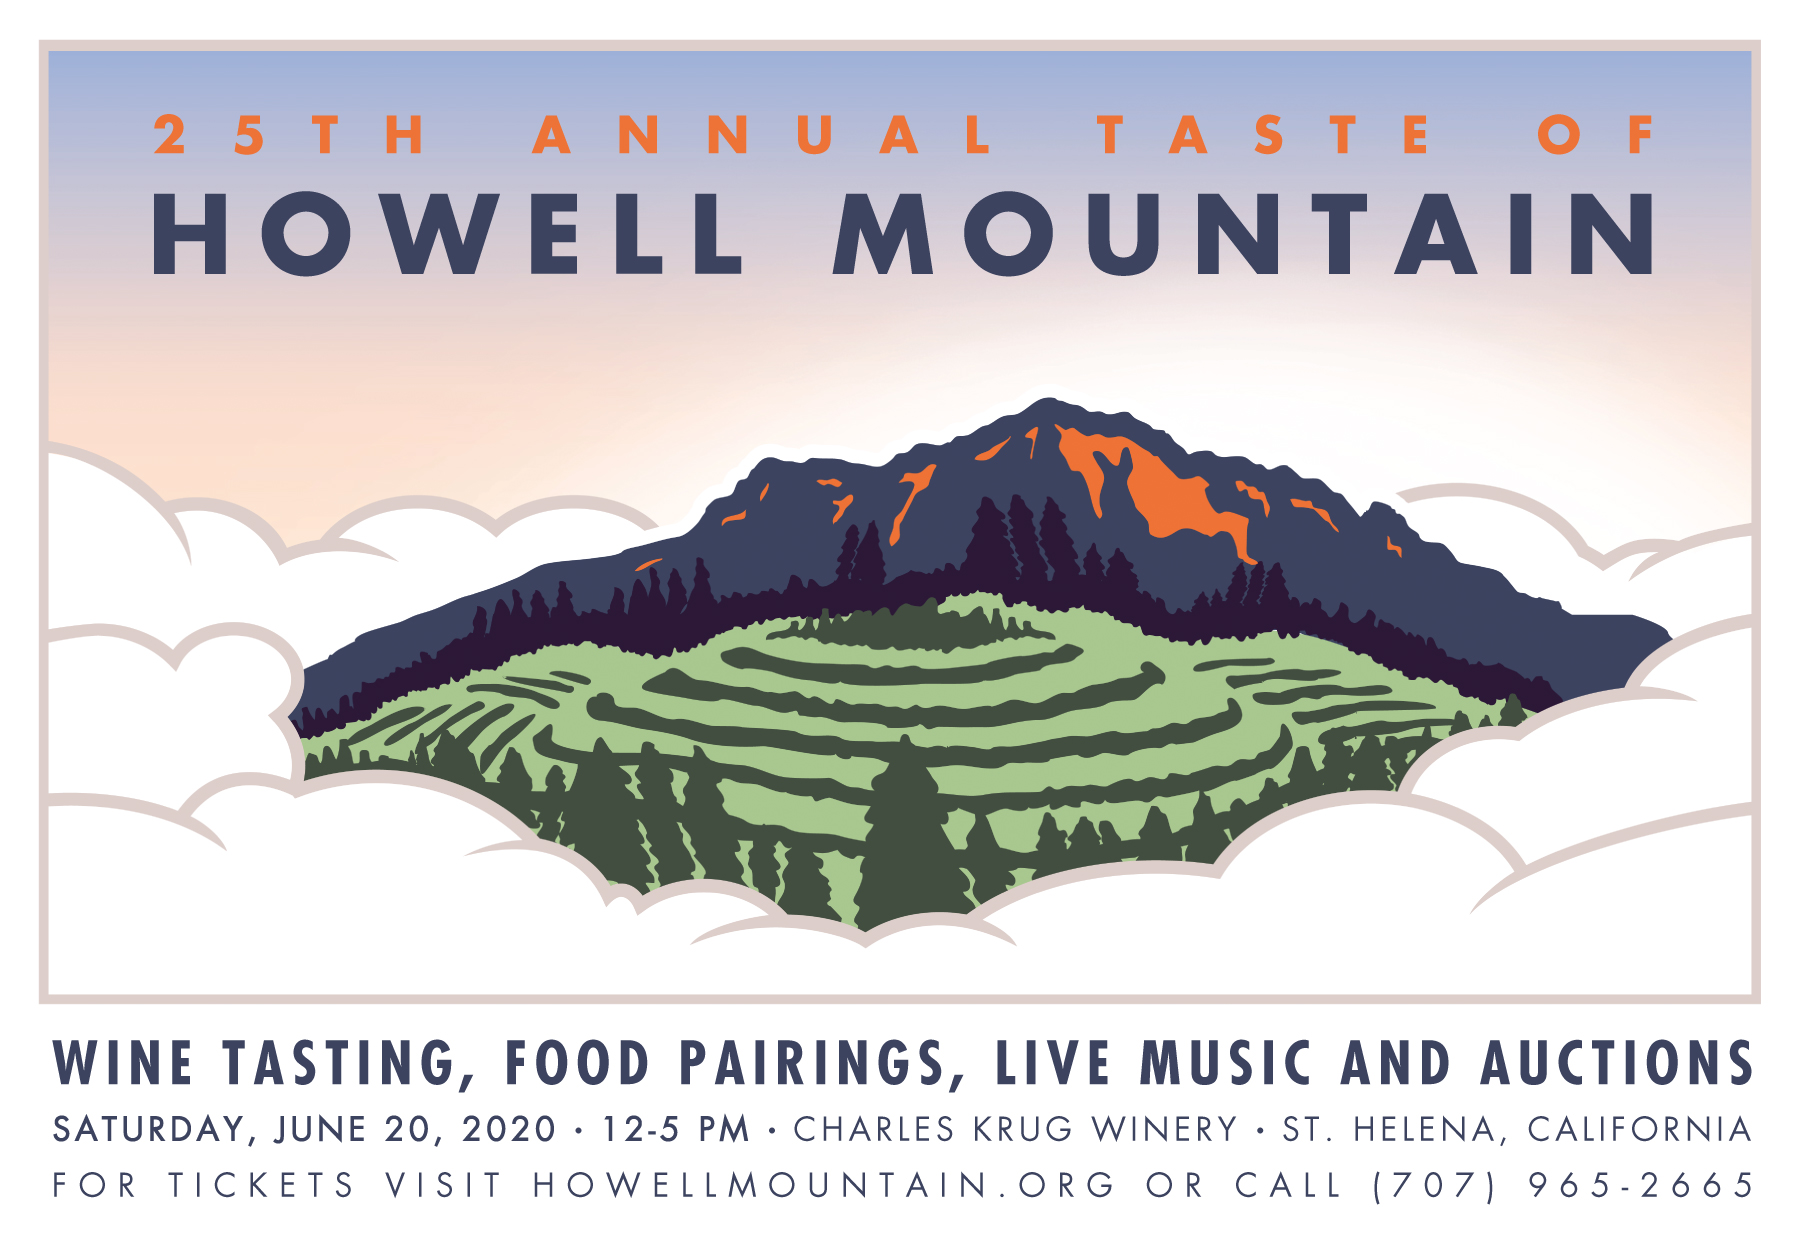 Taste of Howell Mountain